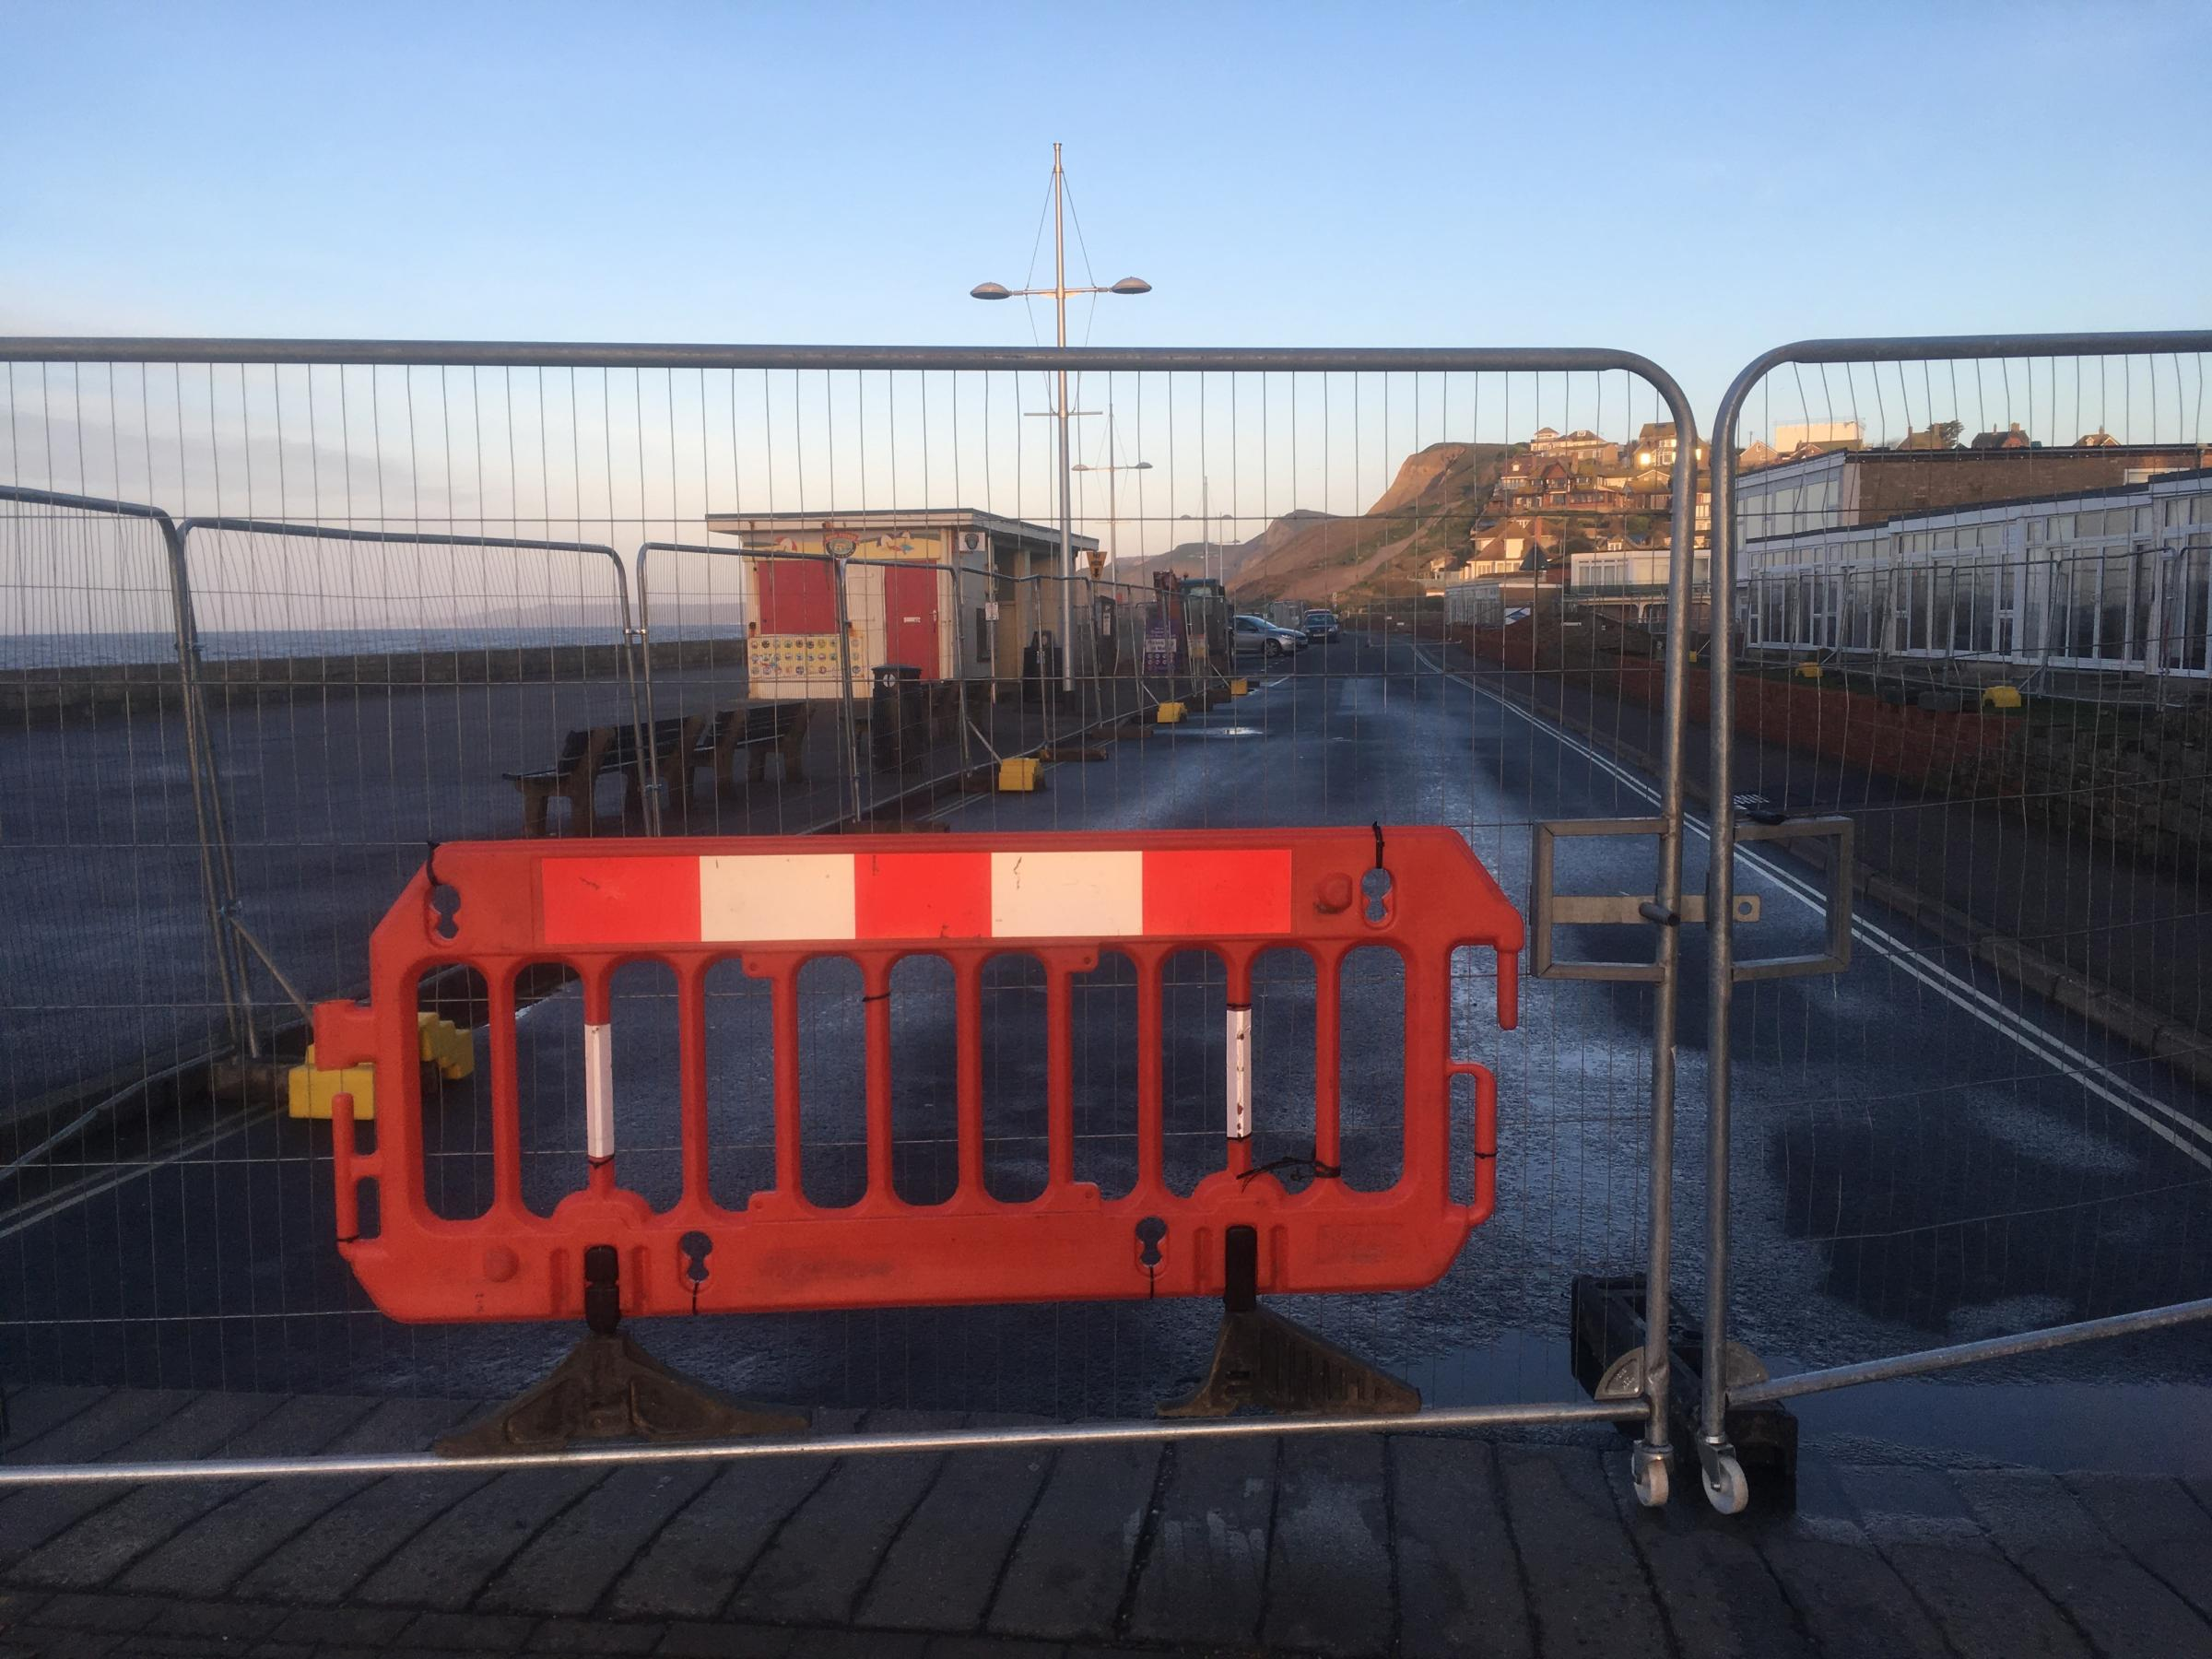 Work on the sea defence wall at West Bay has re-started